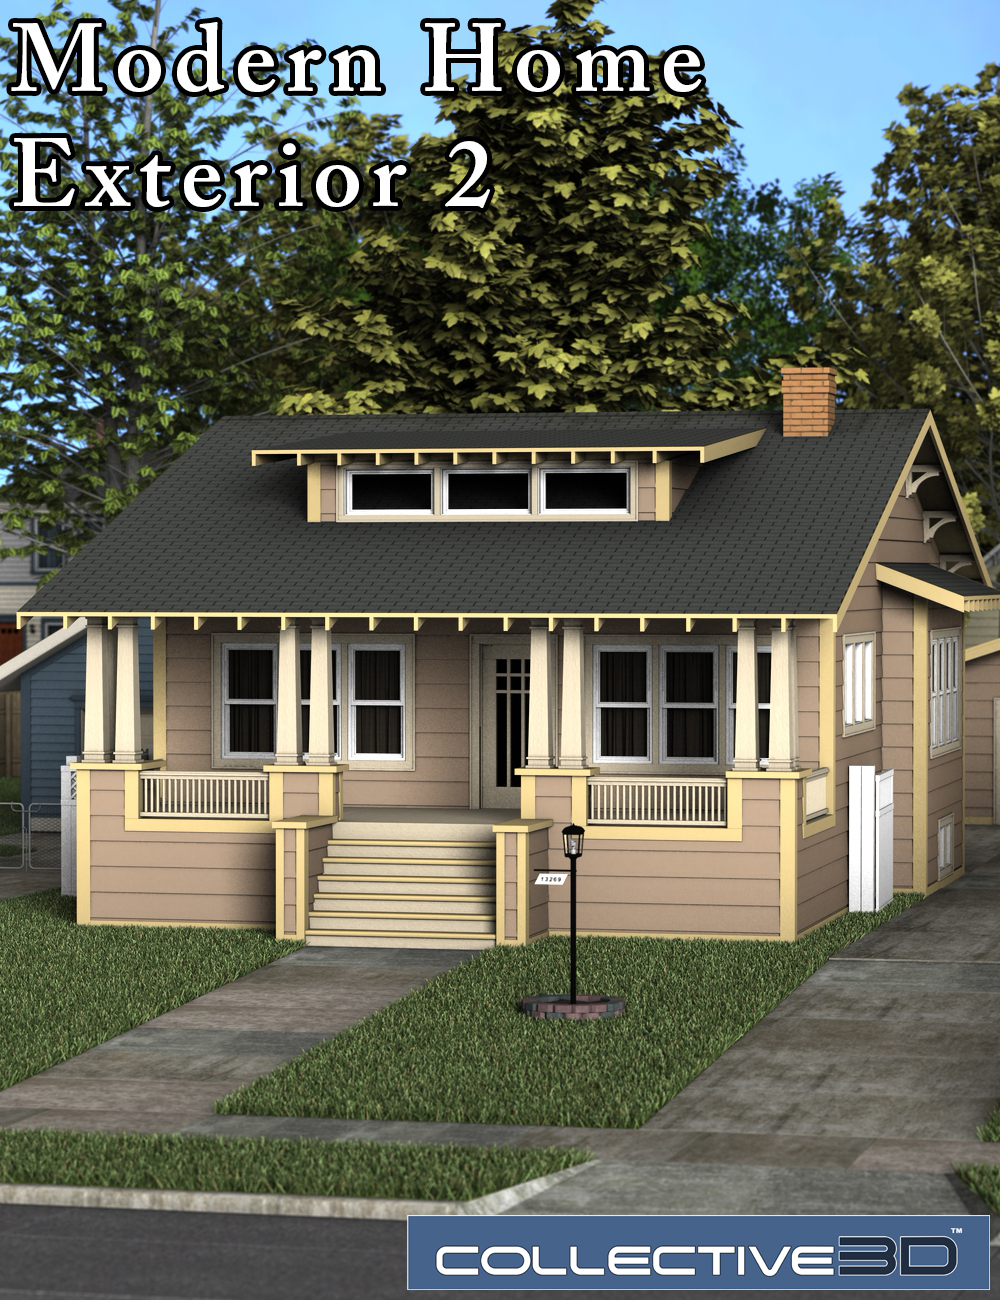 Collective3d Modern Home Exterior 2 by: Collective3d, 3D Models by Daz 3D